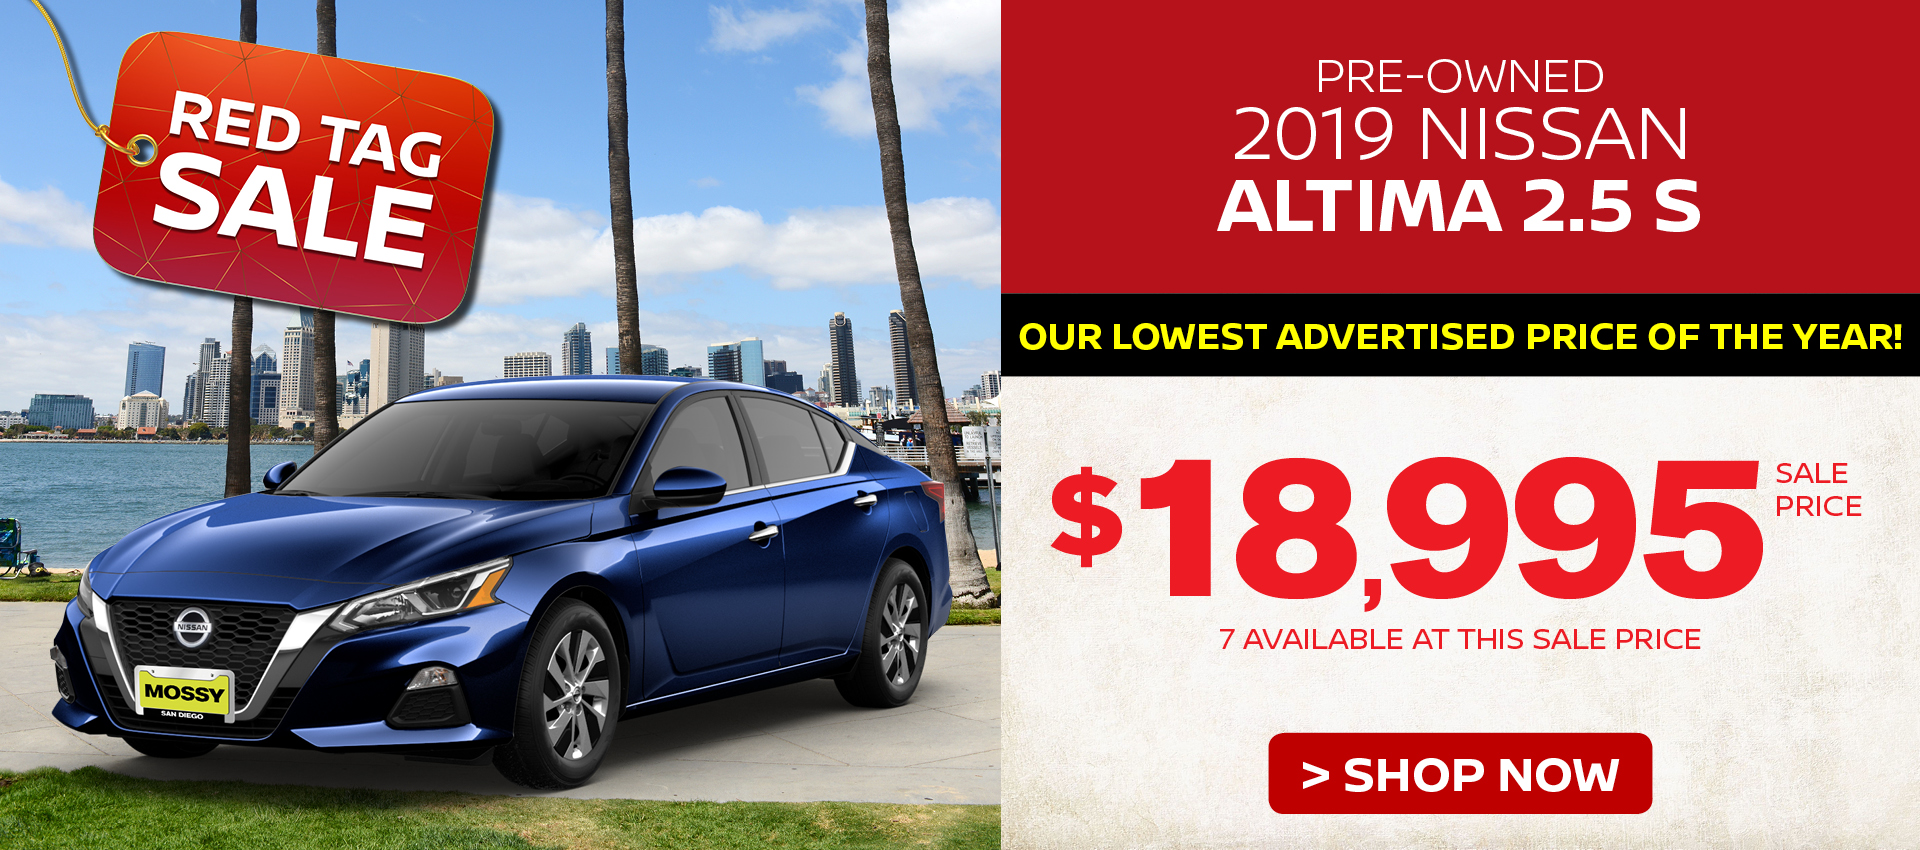 Mossy Nissan - PreOwned Altima Summer Savings HP